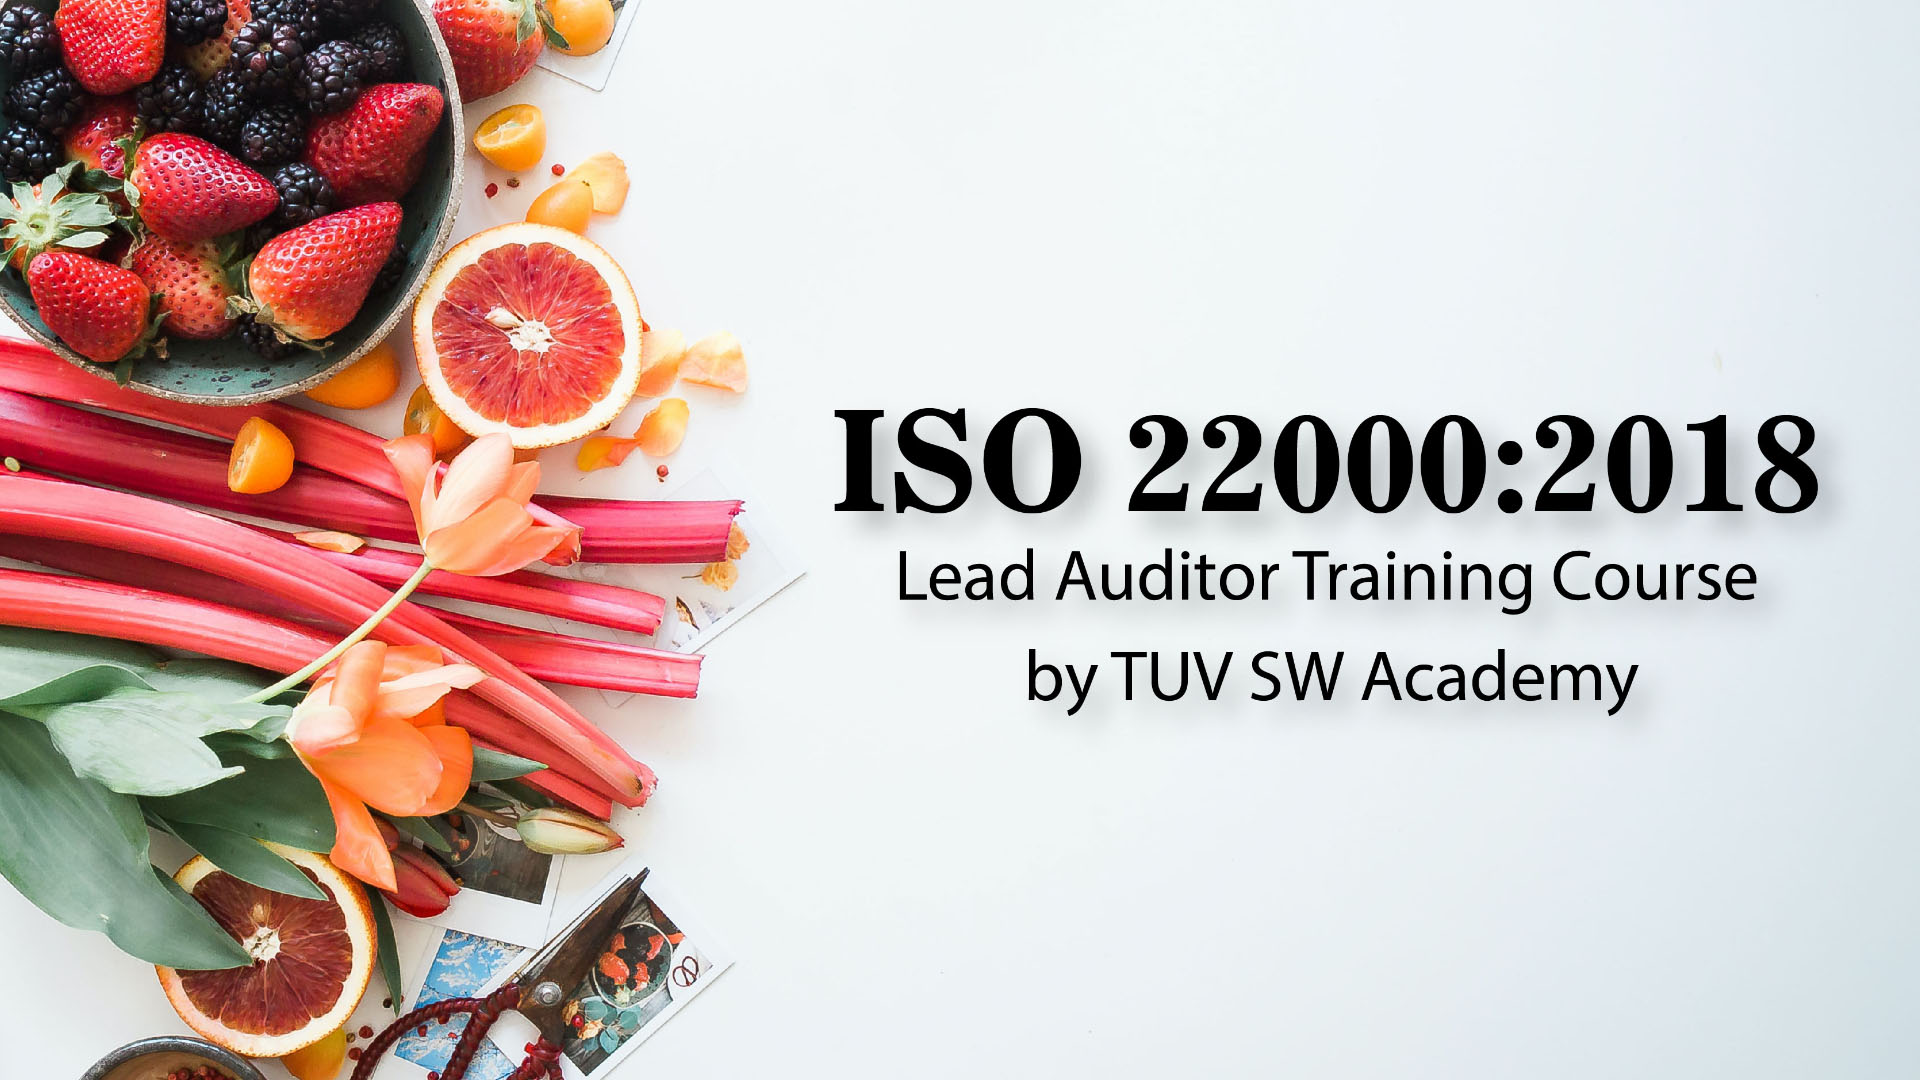 ISO 22000:2018 (FSMS) Lead Auditor Training Course